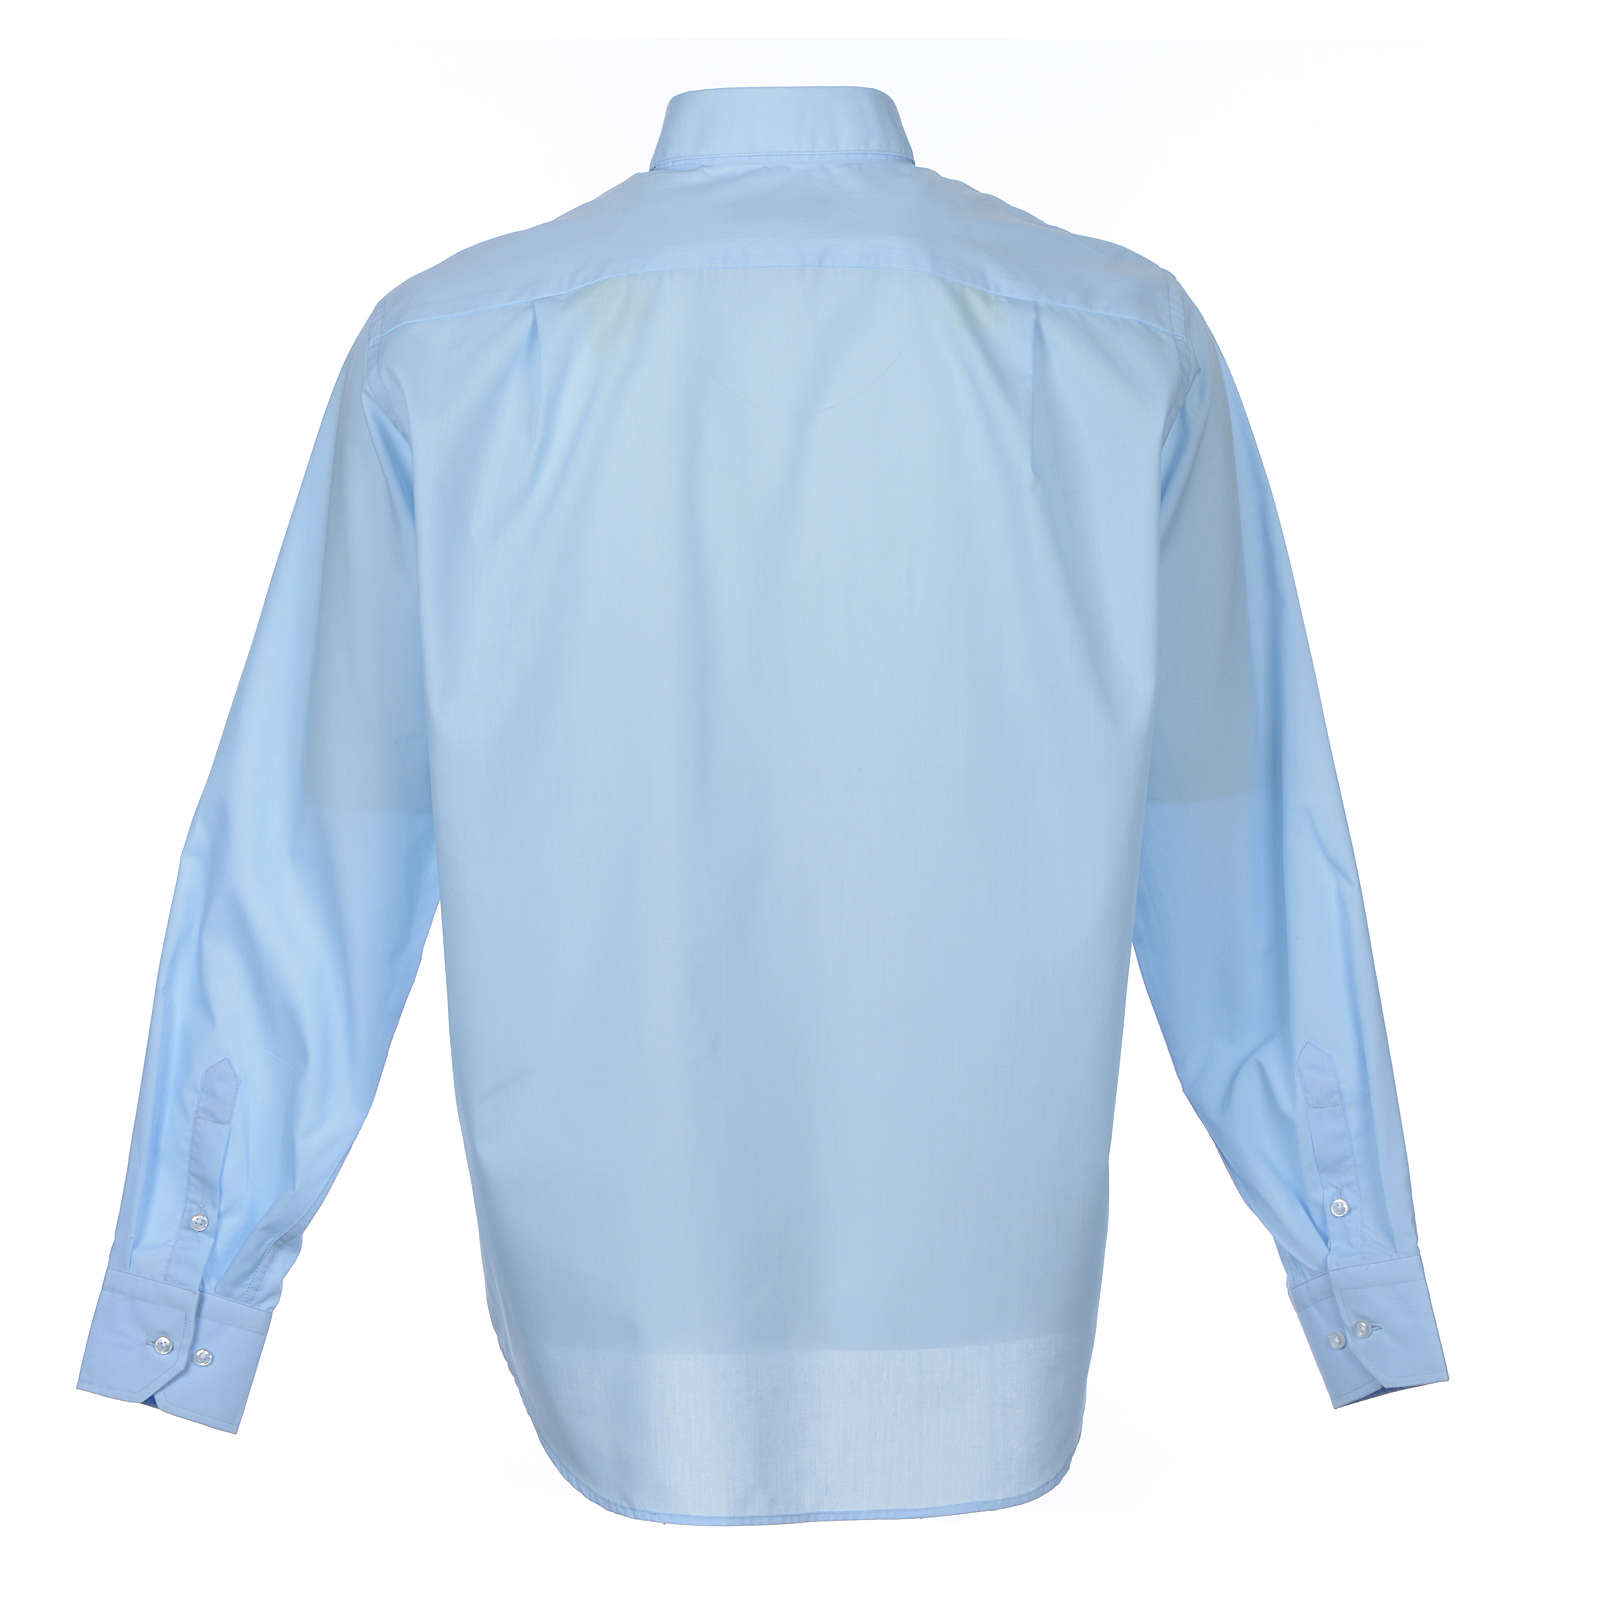 Clergy shirt long sleeves solid colour mixed cotton Light Blue